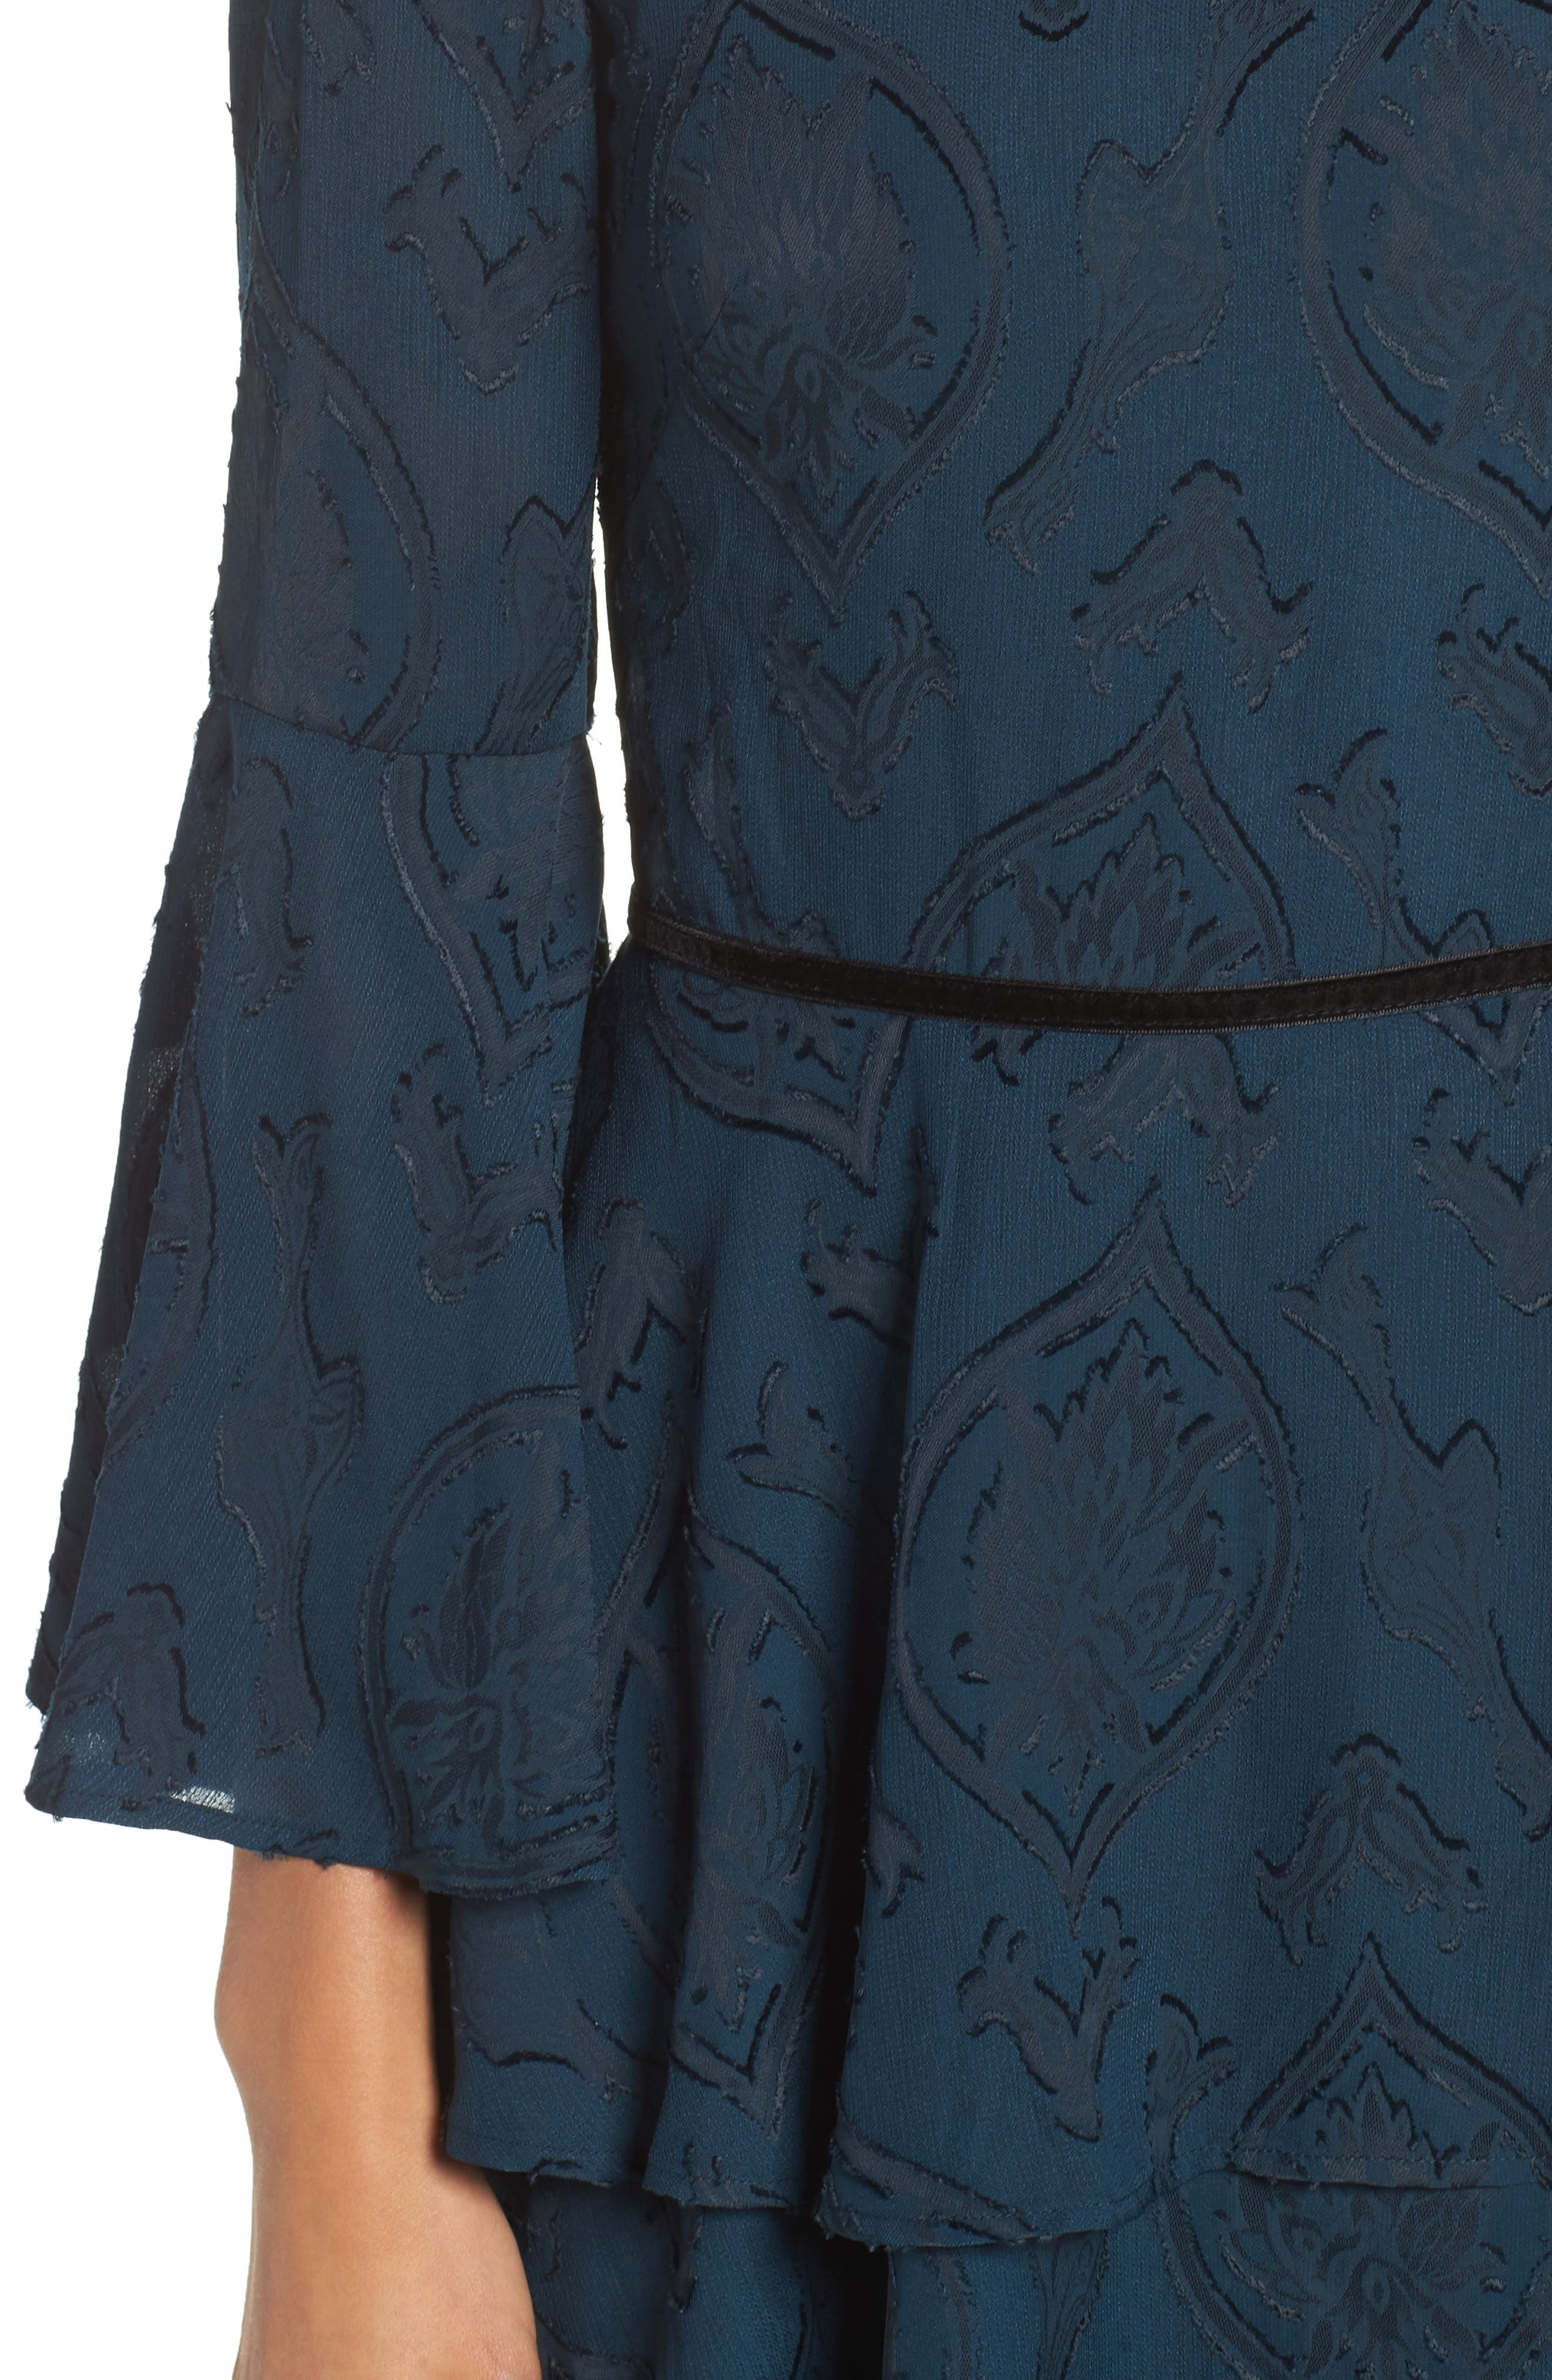 Tiered Chiffon Fit & Flare Dress,                             Alternate thumbnail 4, color,                             Teal/ Black